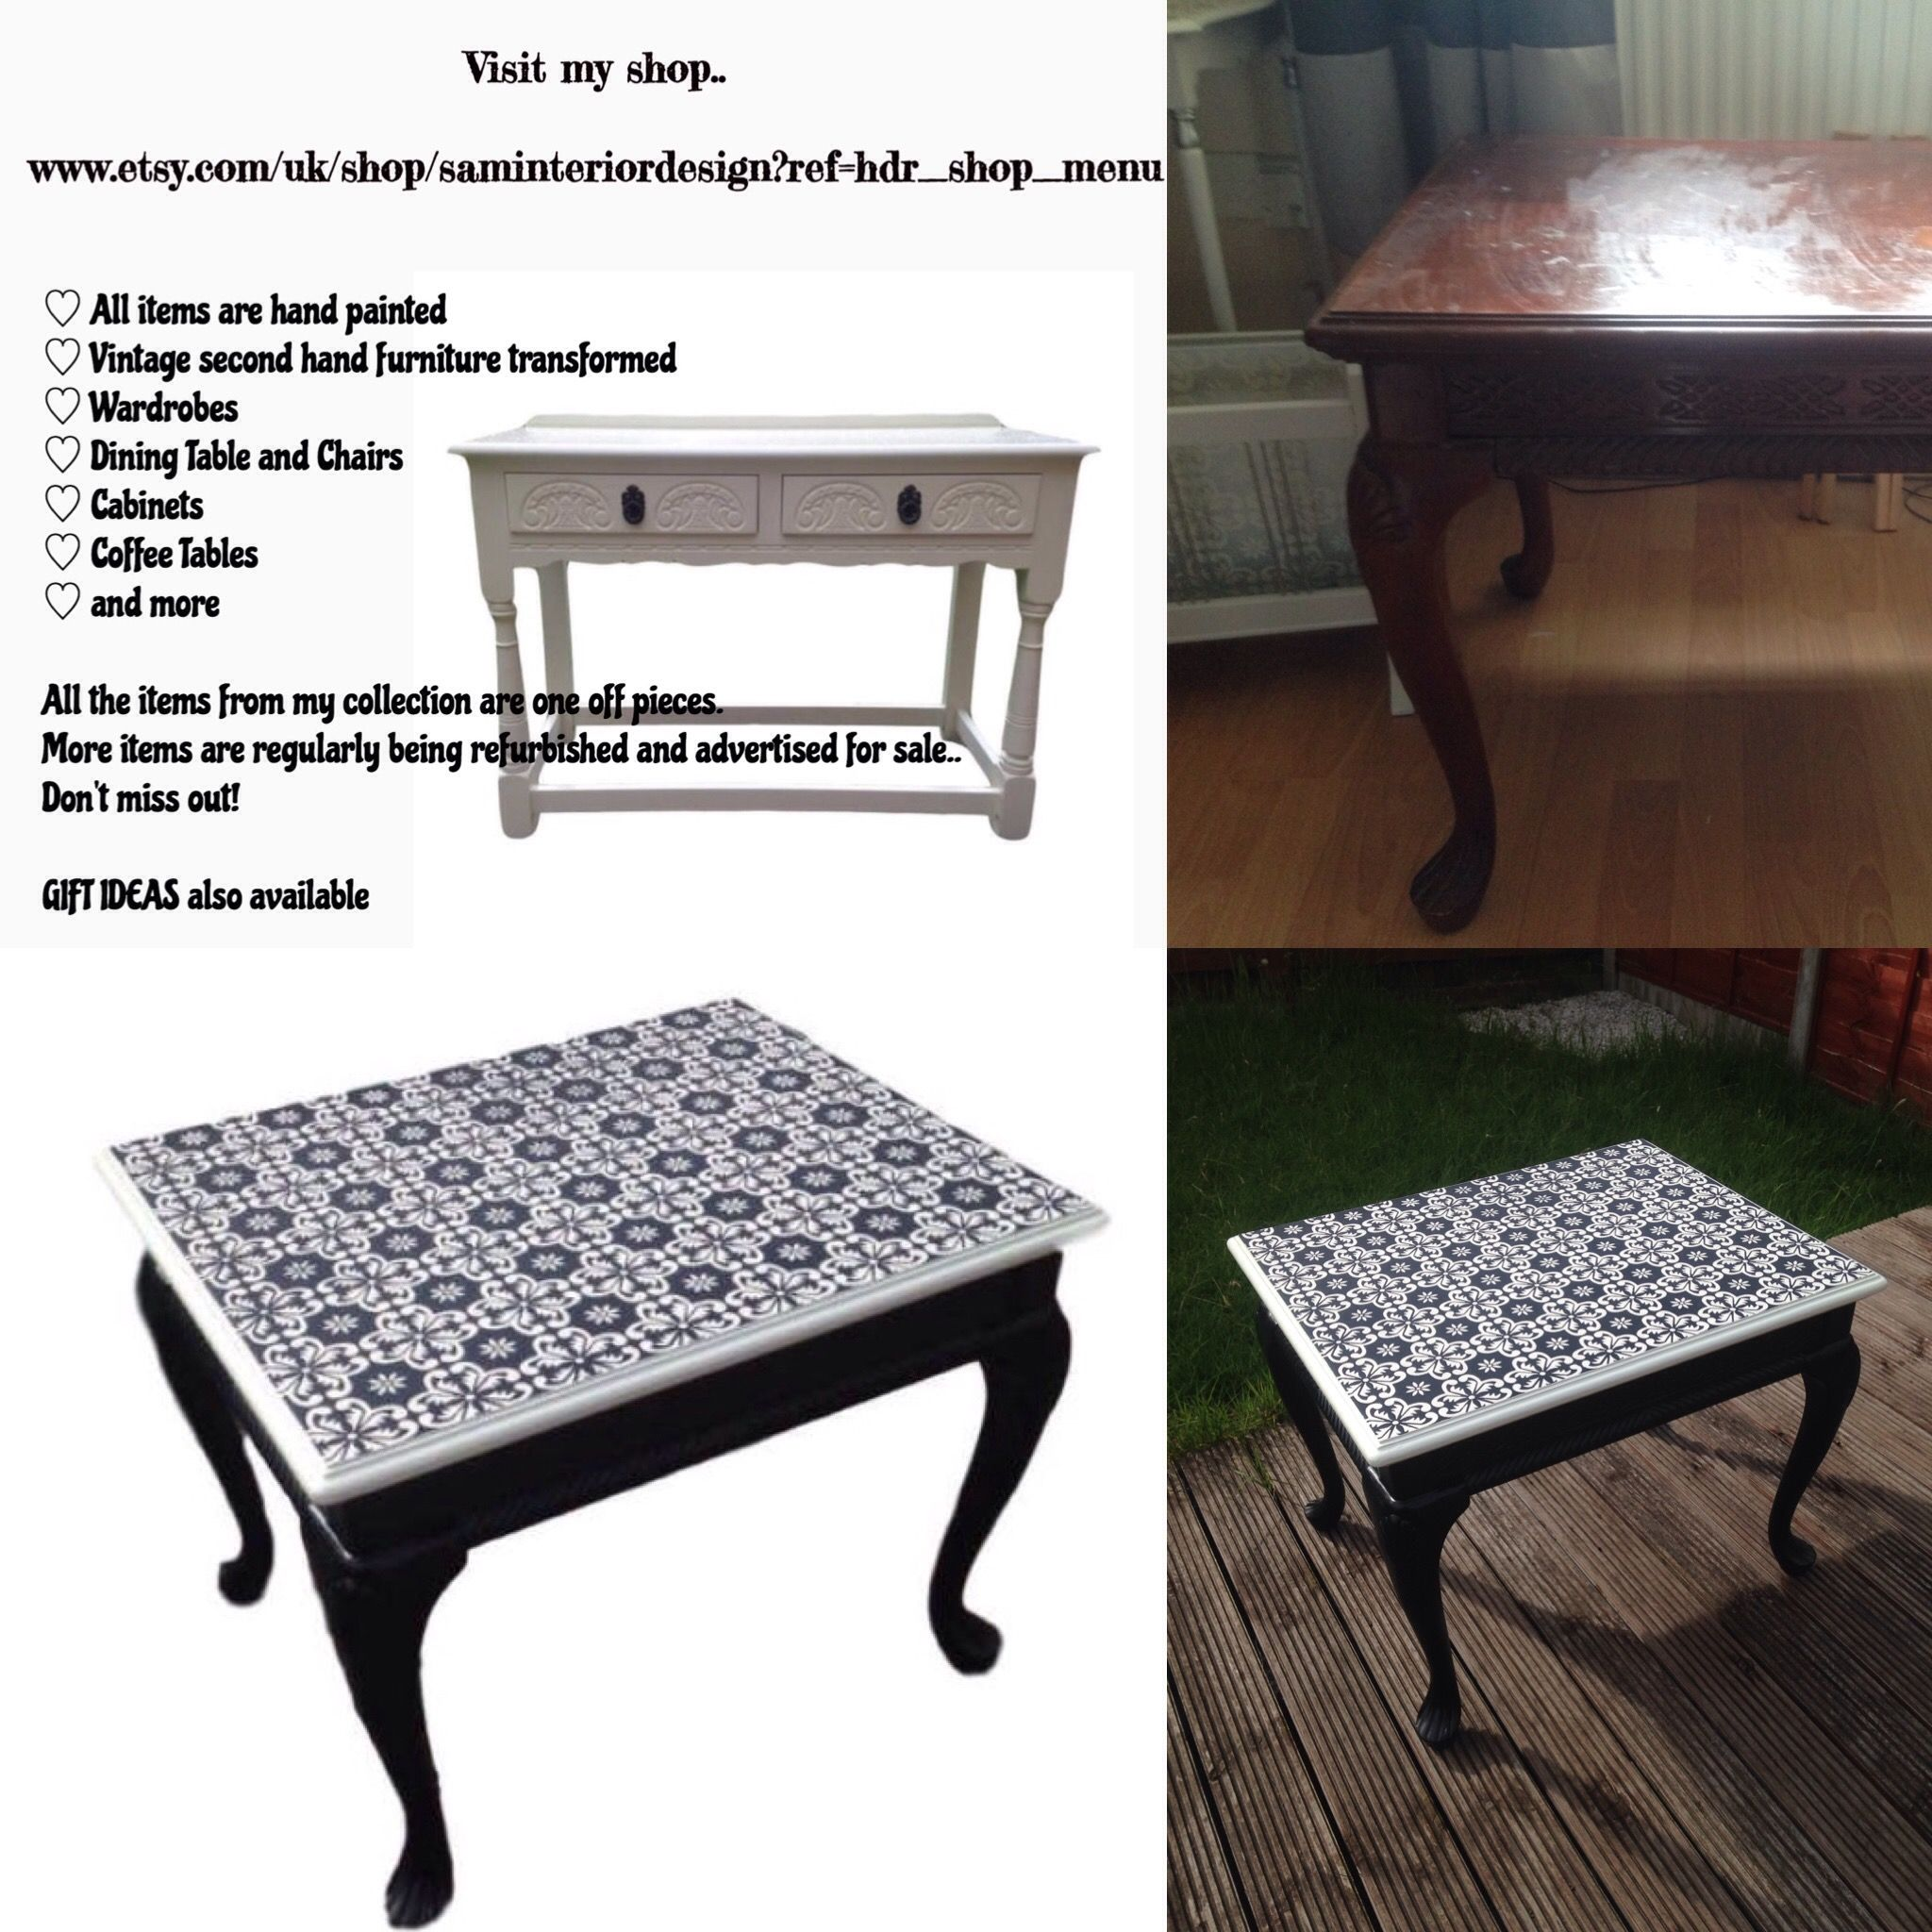 Black And White Square Coffee Table Queen Anne Legs All Hand Painted Table Top Has Been Stencilled Using Rust Furniture Dining Table Chairs Second Furniture [ 2048 x 2048 Pixel ]